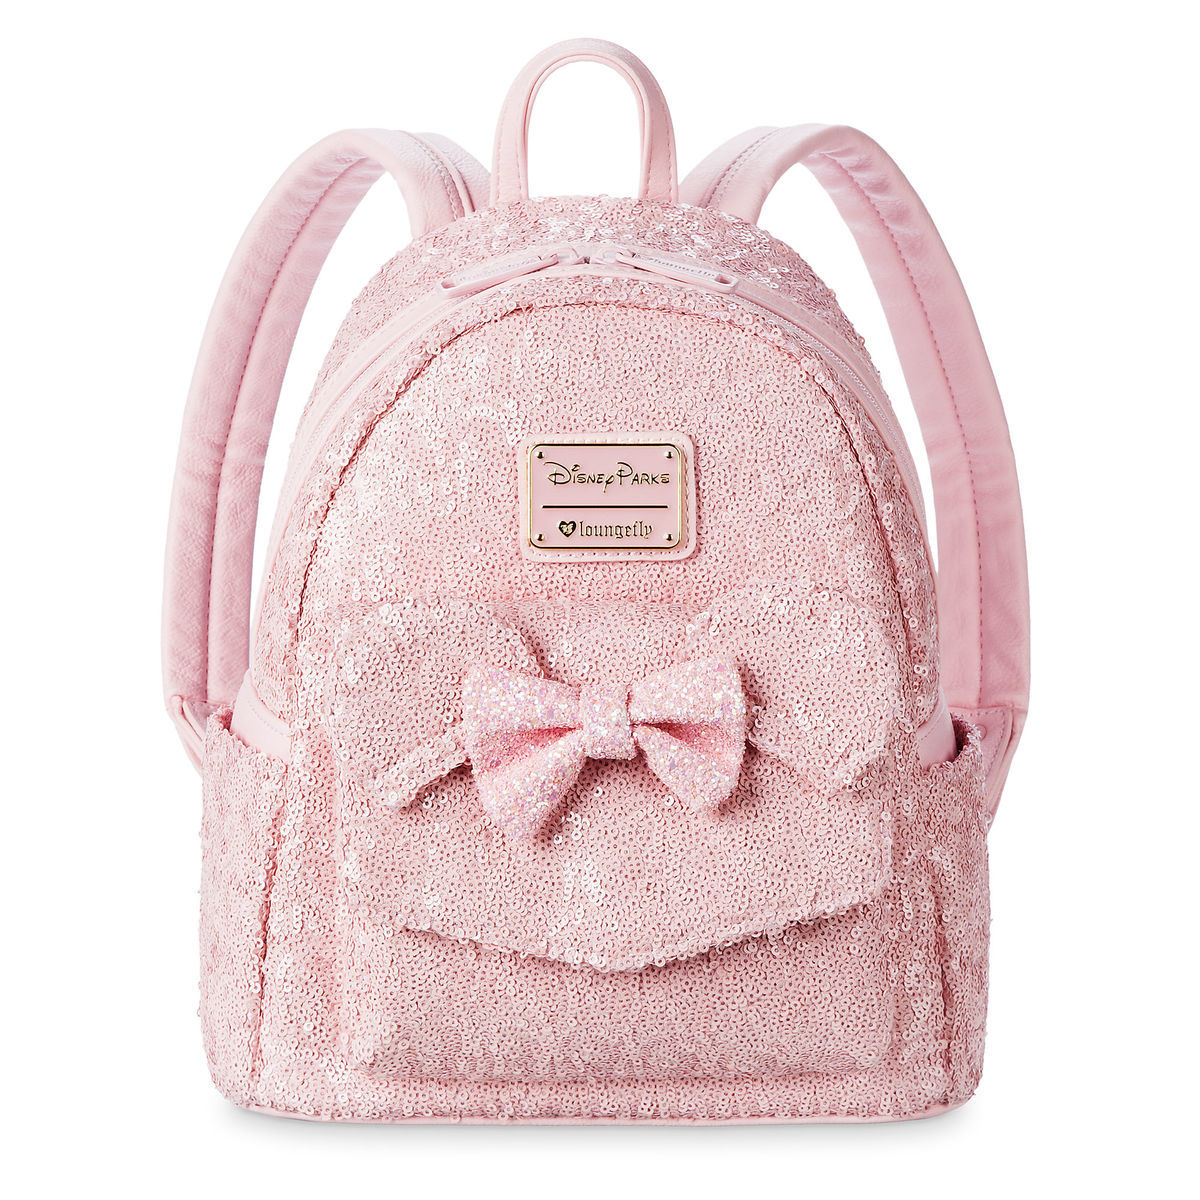 c53d983ecc Add to My Lists. Disney Parks Mini Backpack - Millennial Pink by Loungefly